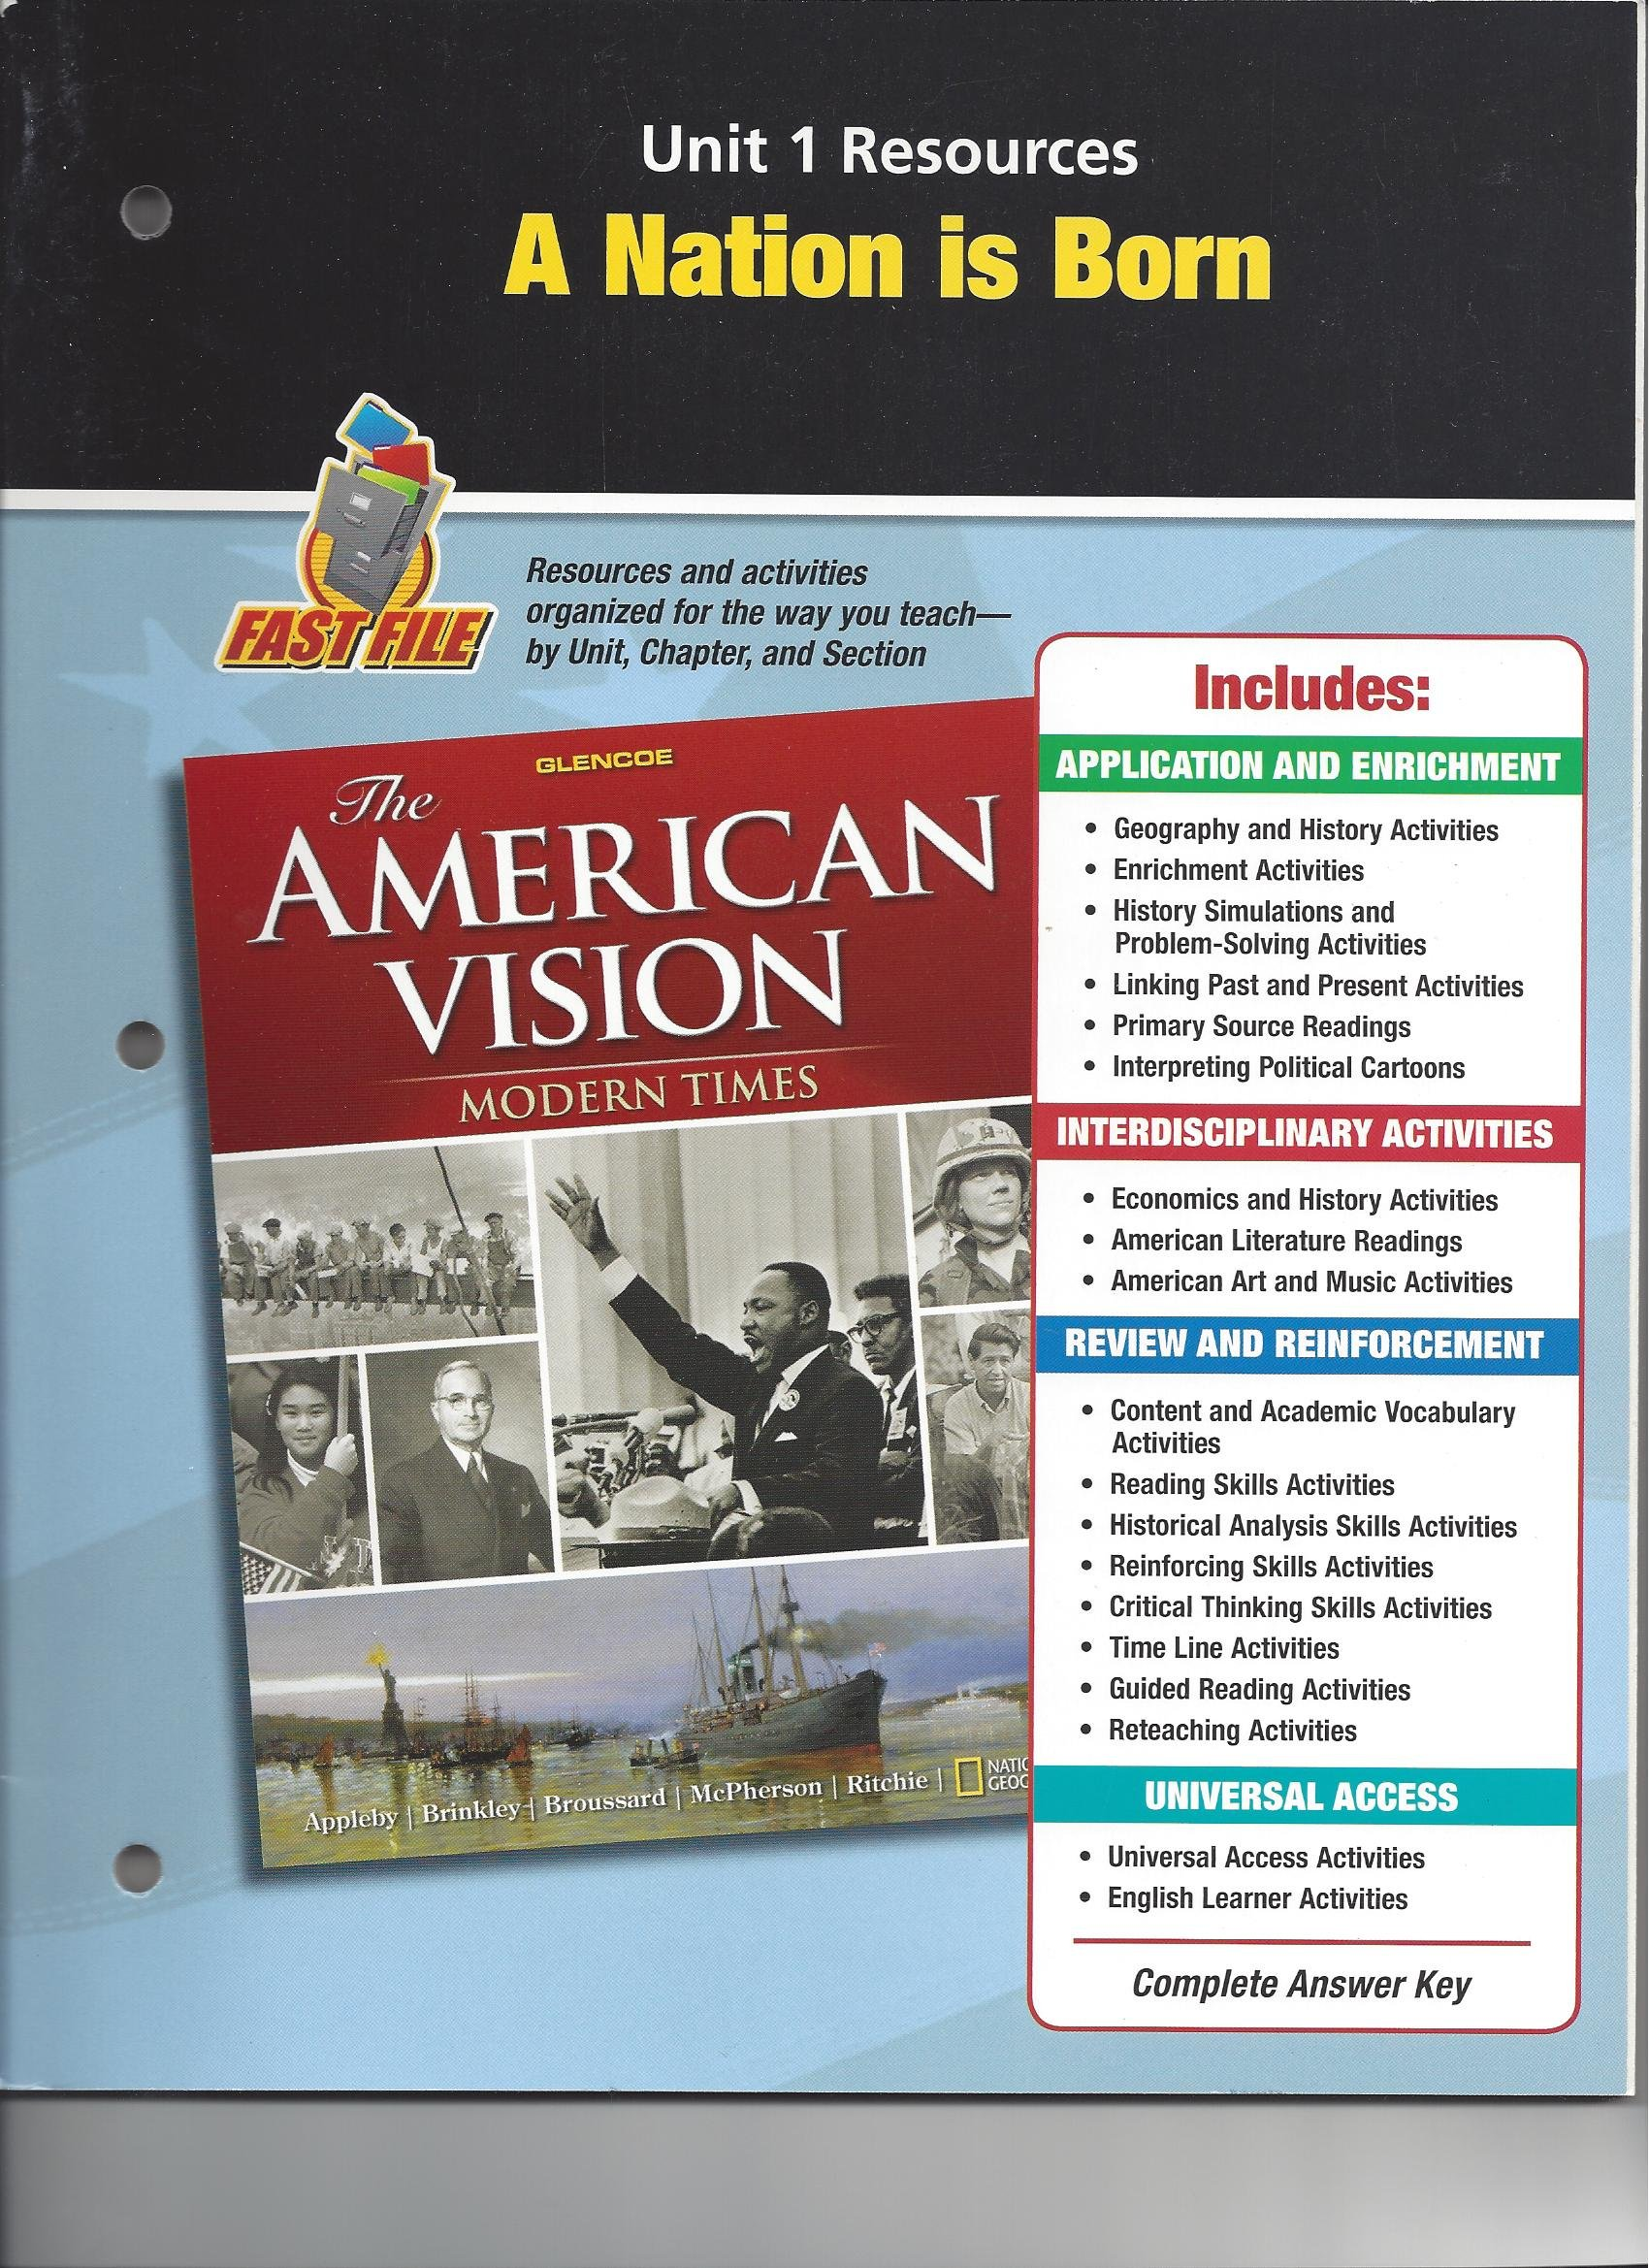 unit 1 resources a nation is born fast file american vision modern rh amazon com the american vision modern times guided reading activity answers The American Vision Glencoe McGraw-Hill